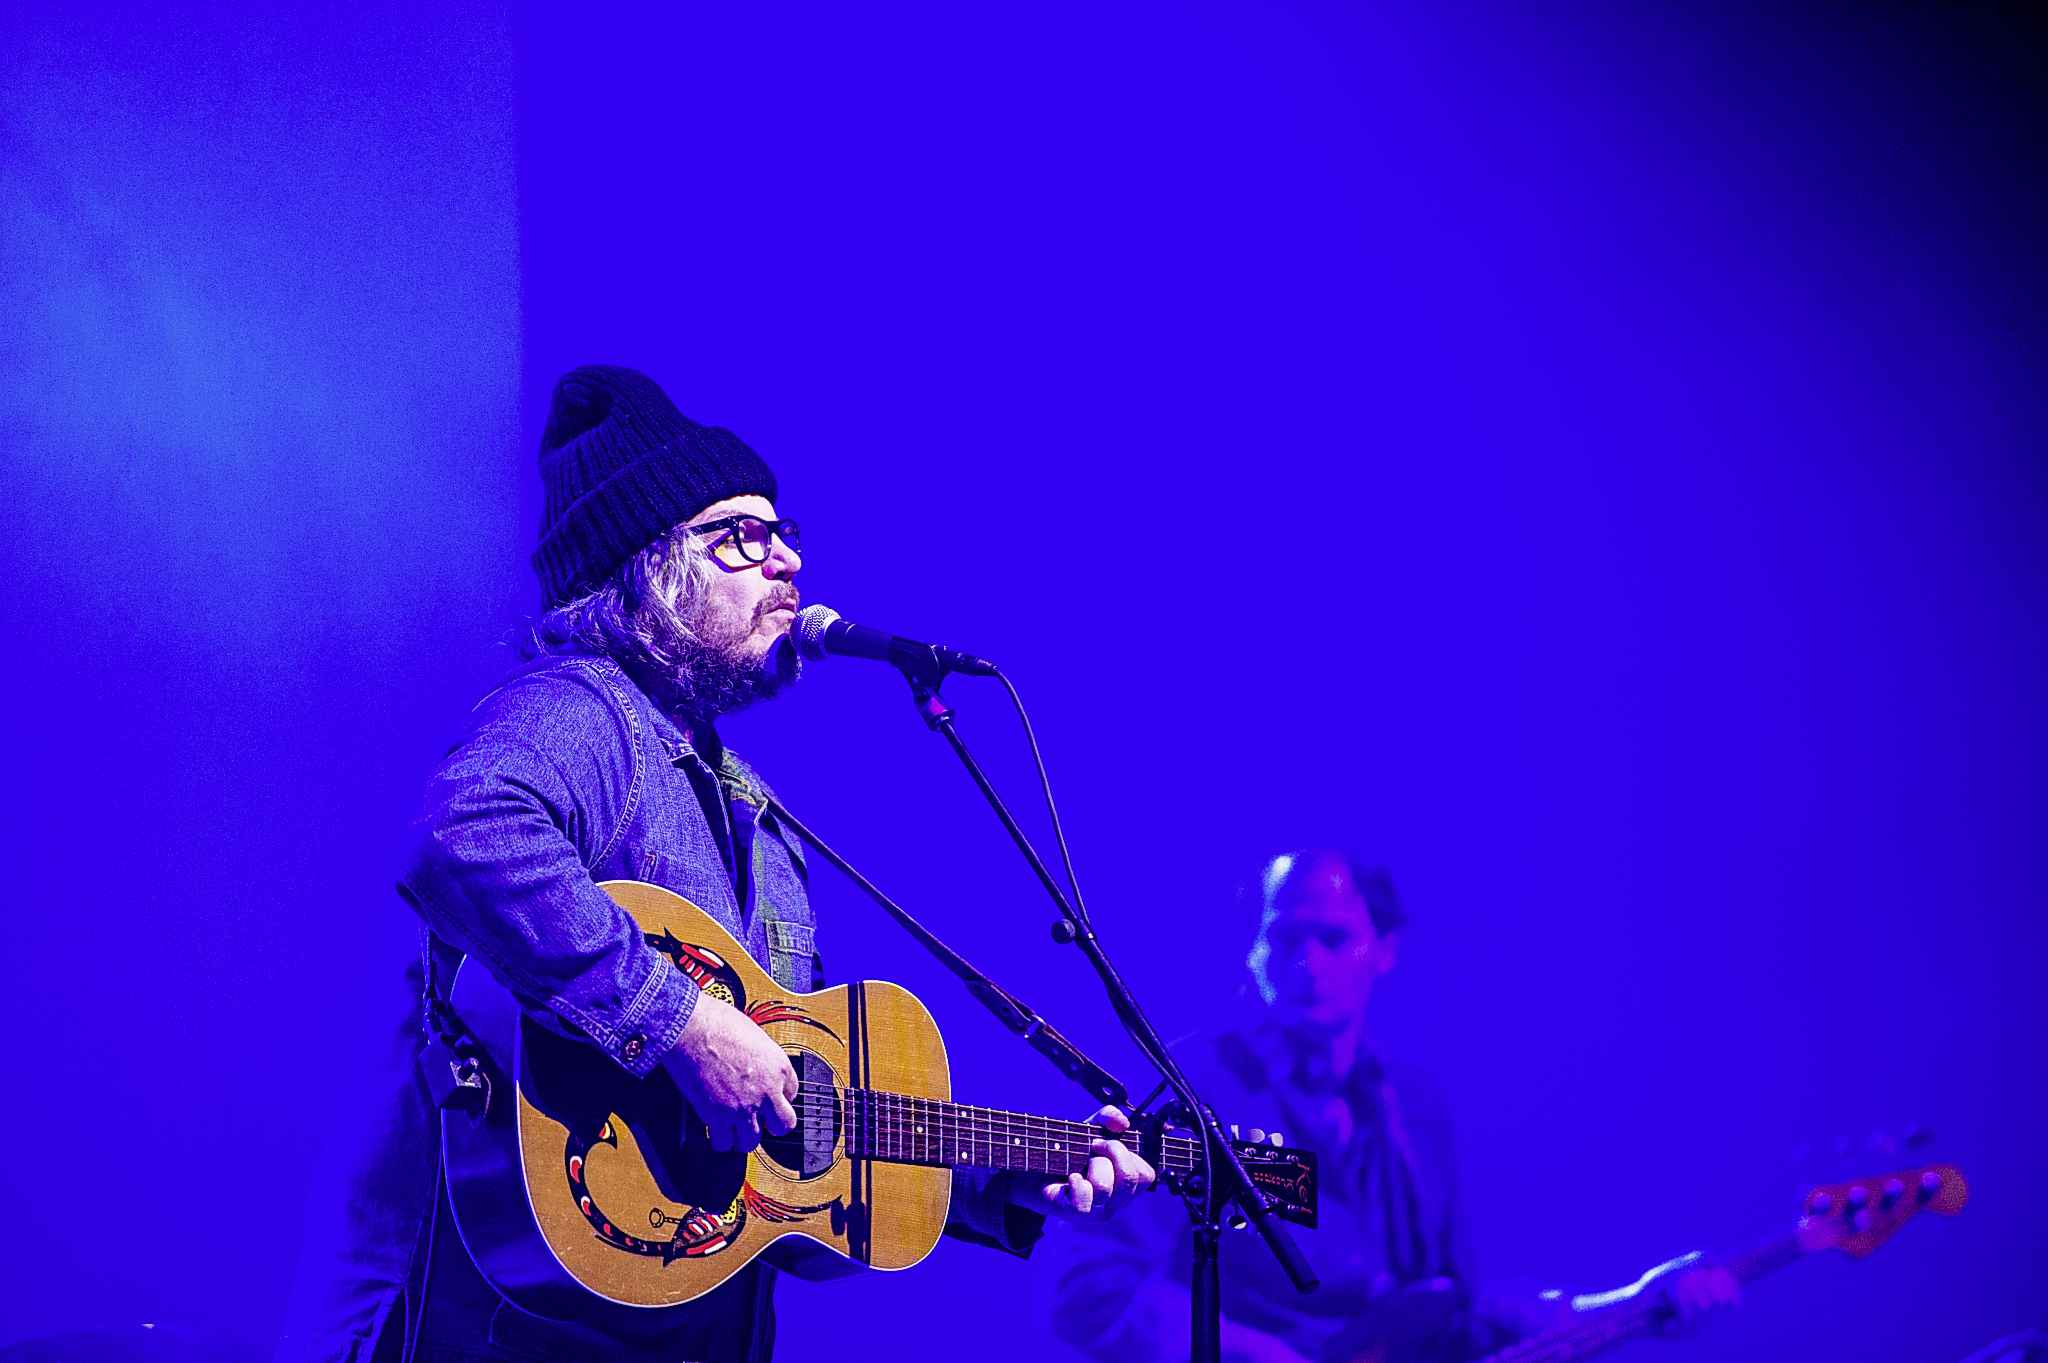 Jeff Tweedy and Wilco at the Centennial Concert Hall on March 11, 2020. (Mike Sudoma / Winnipeg Free Press files)